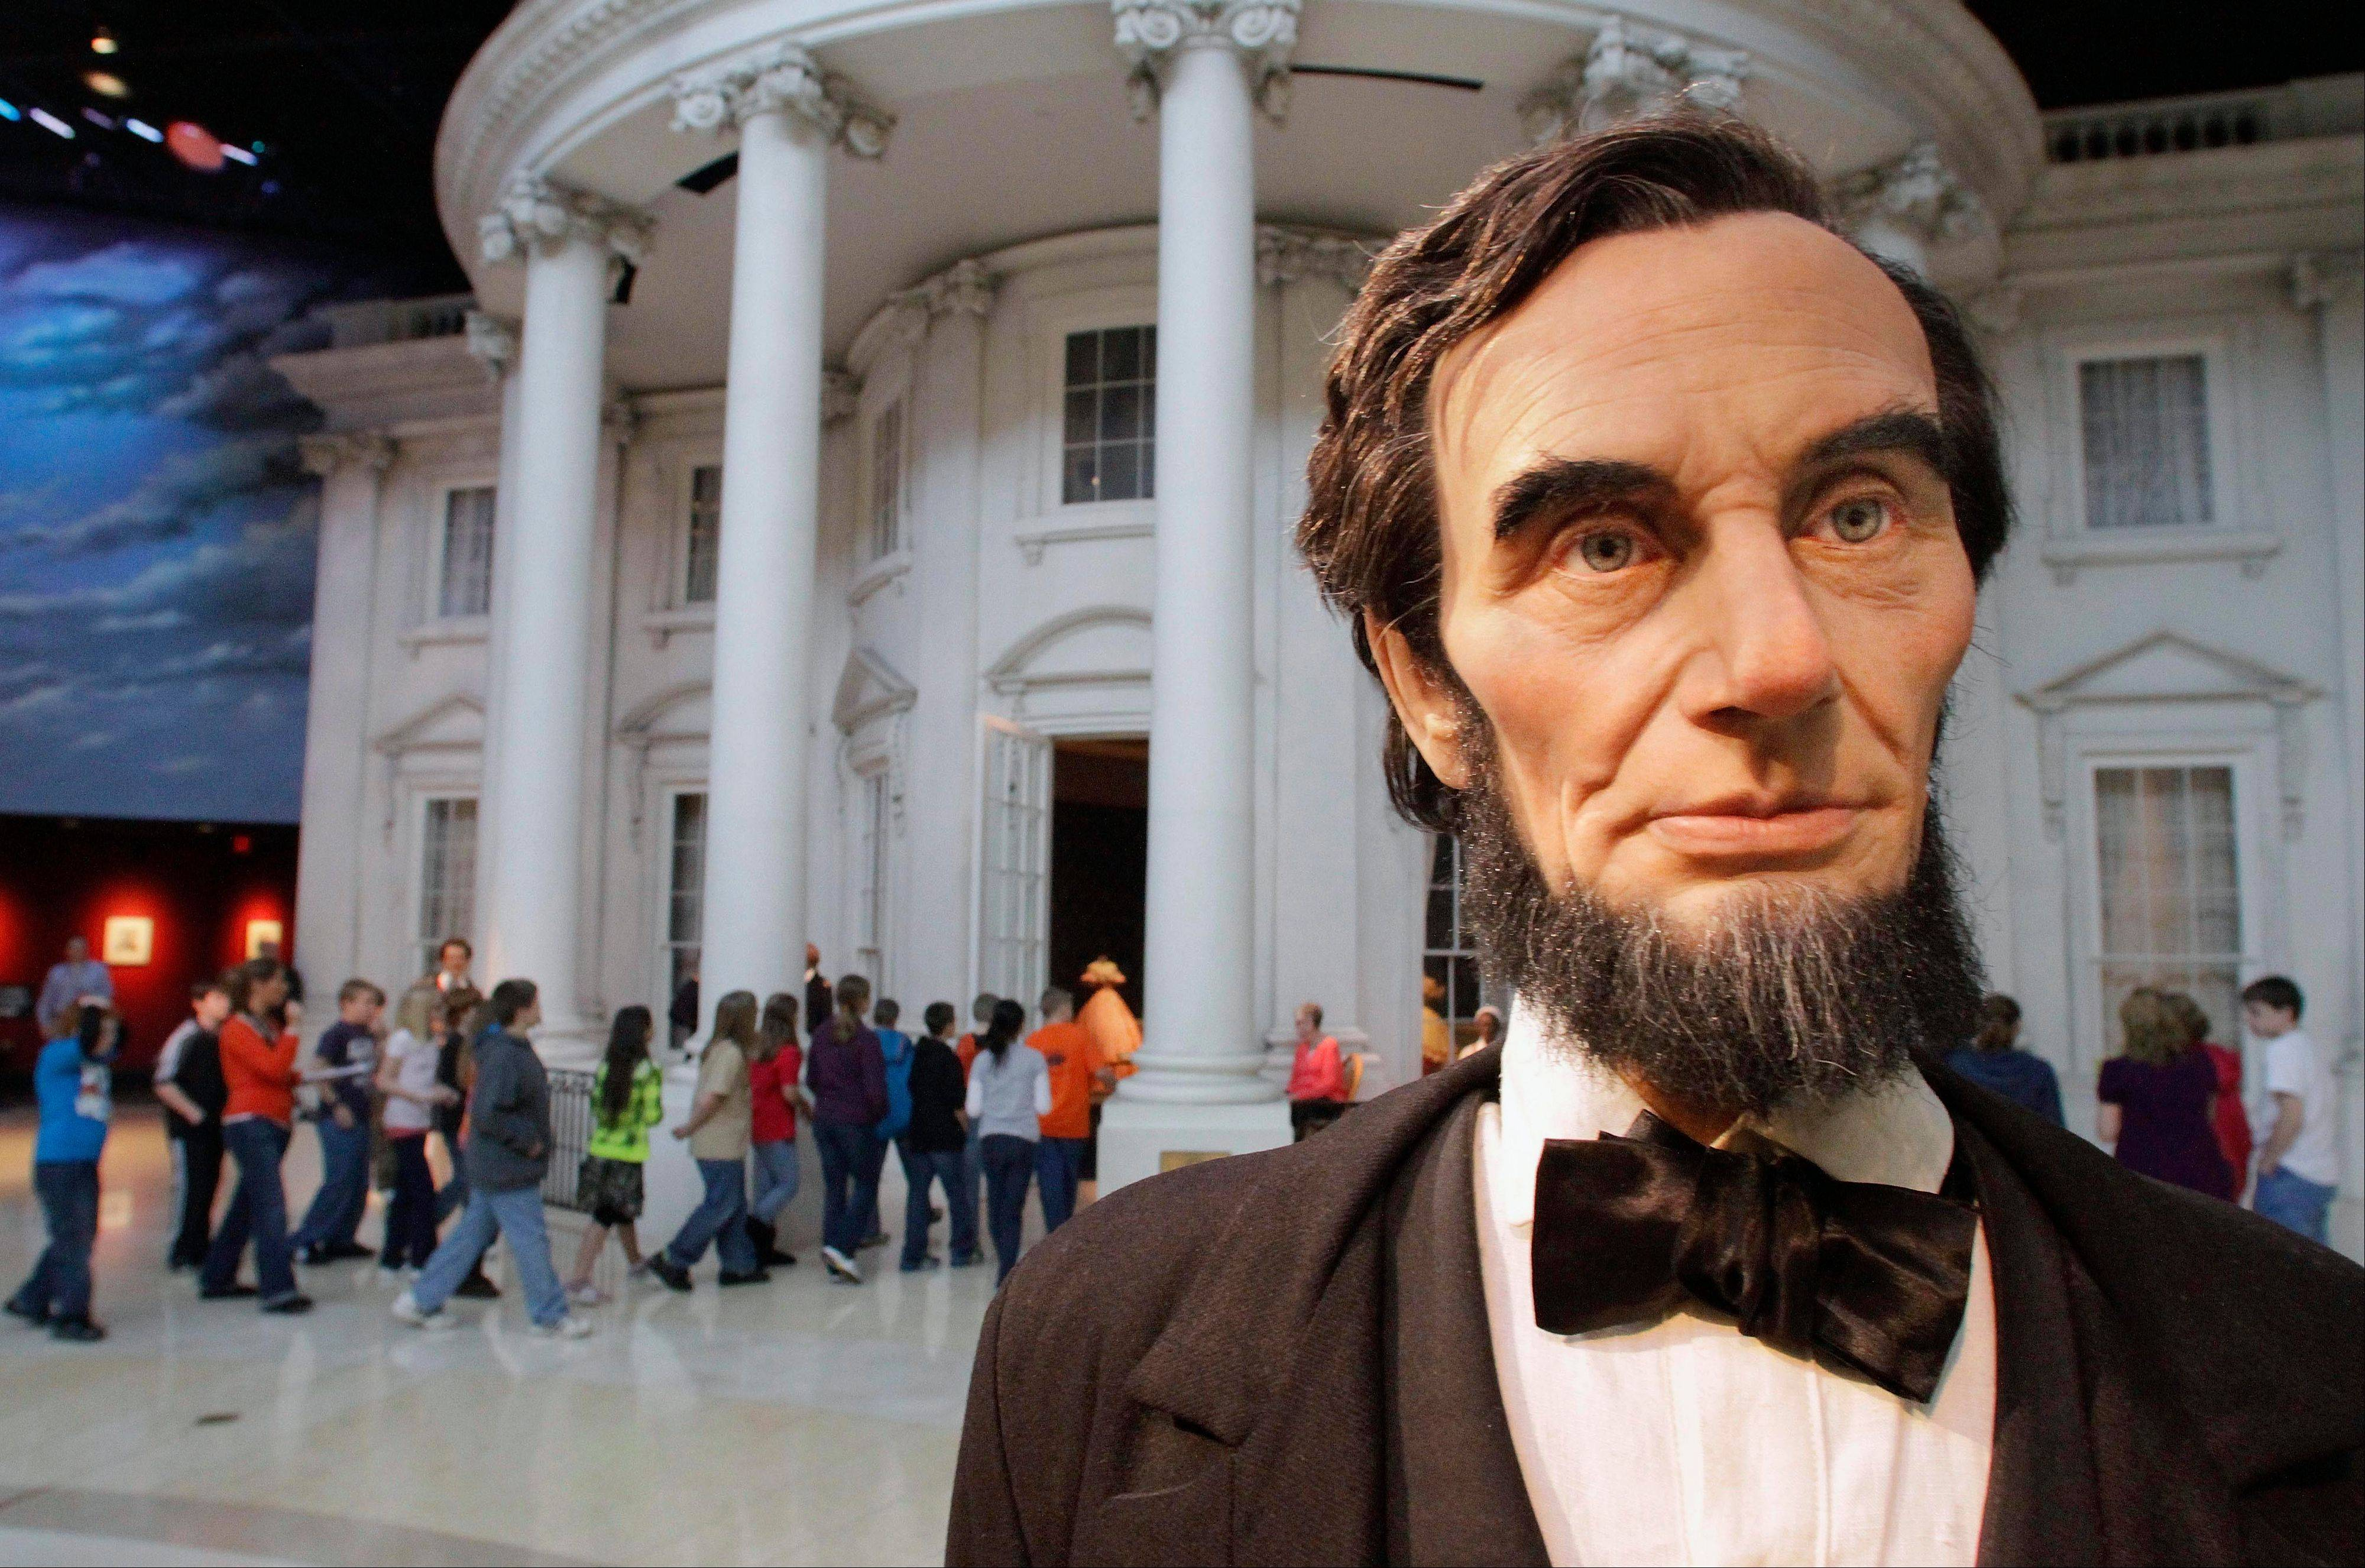 Students enter the �White House� as a life-size Abraham Lincoln replica stands outside at Abraham Lincoln Presidential Library and Museum in Springfield, Ill. Illinois wants to attract more international tourists and is harnessing the recent popularity of Lincoln.